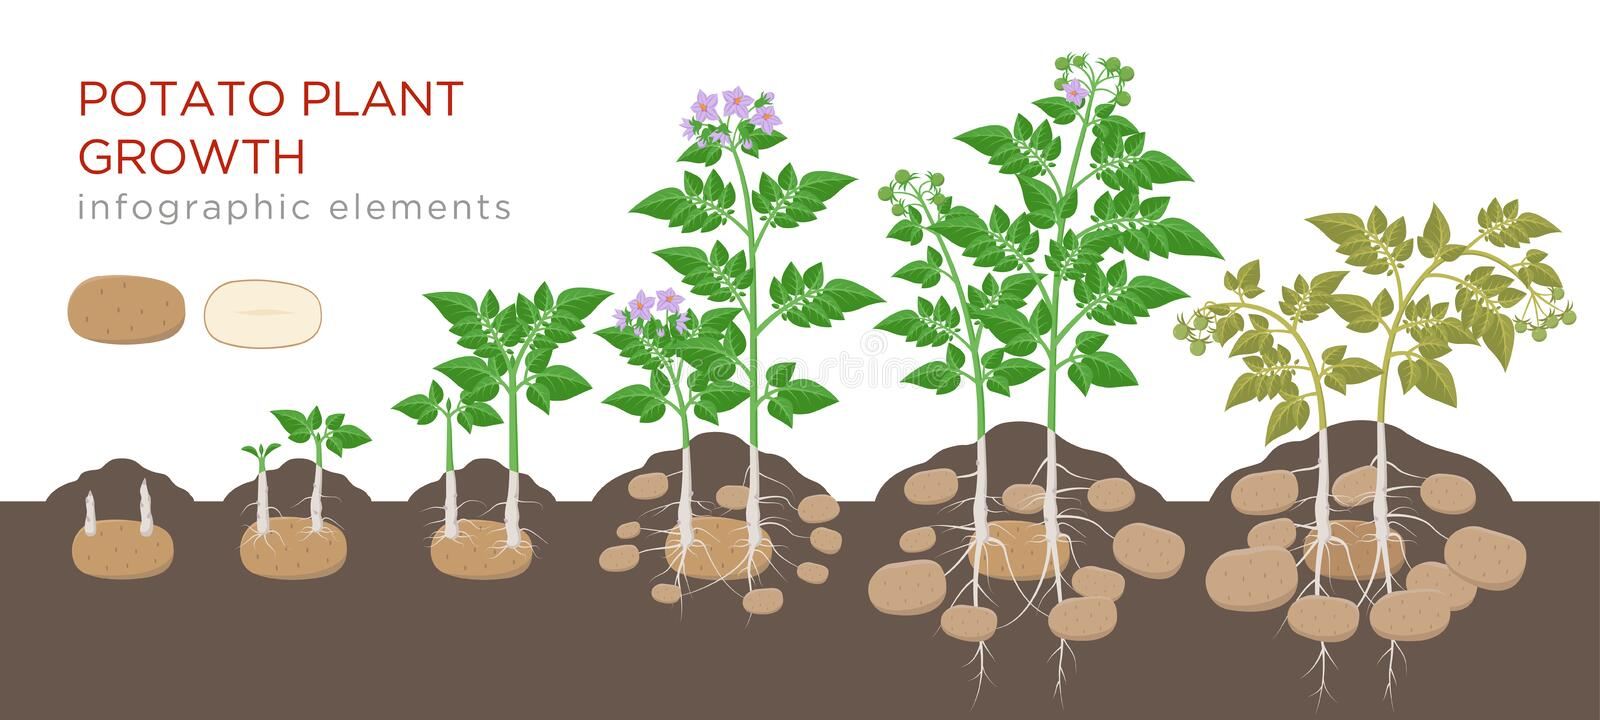 Potatoes plant growing process from seed to ripe vegetables on plants isolated on white background. Potato growth stages stock illustration